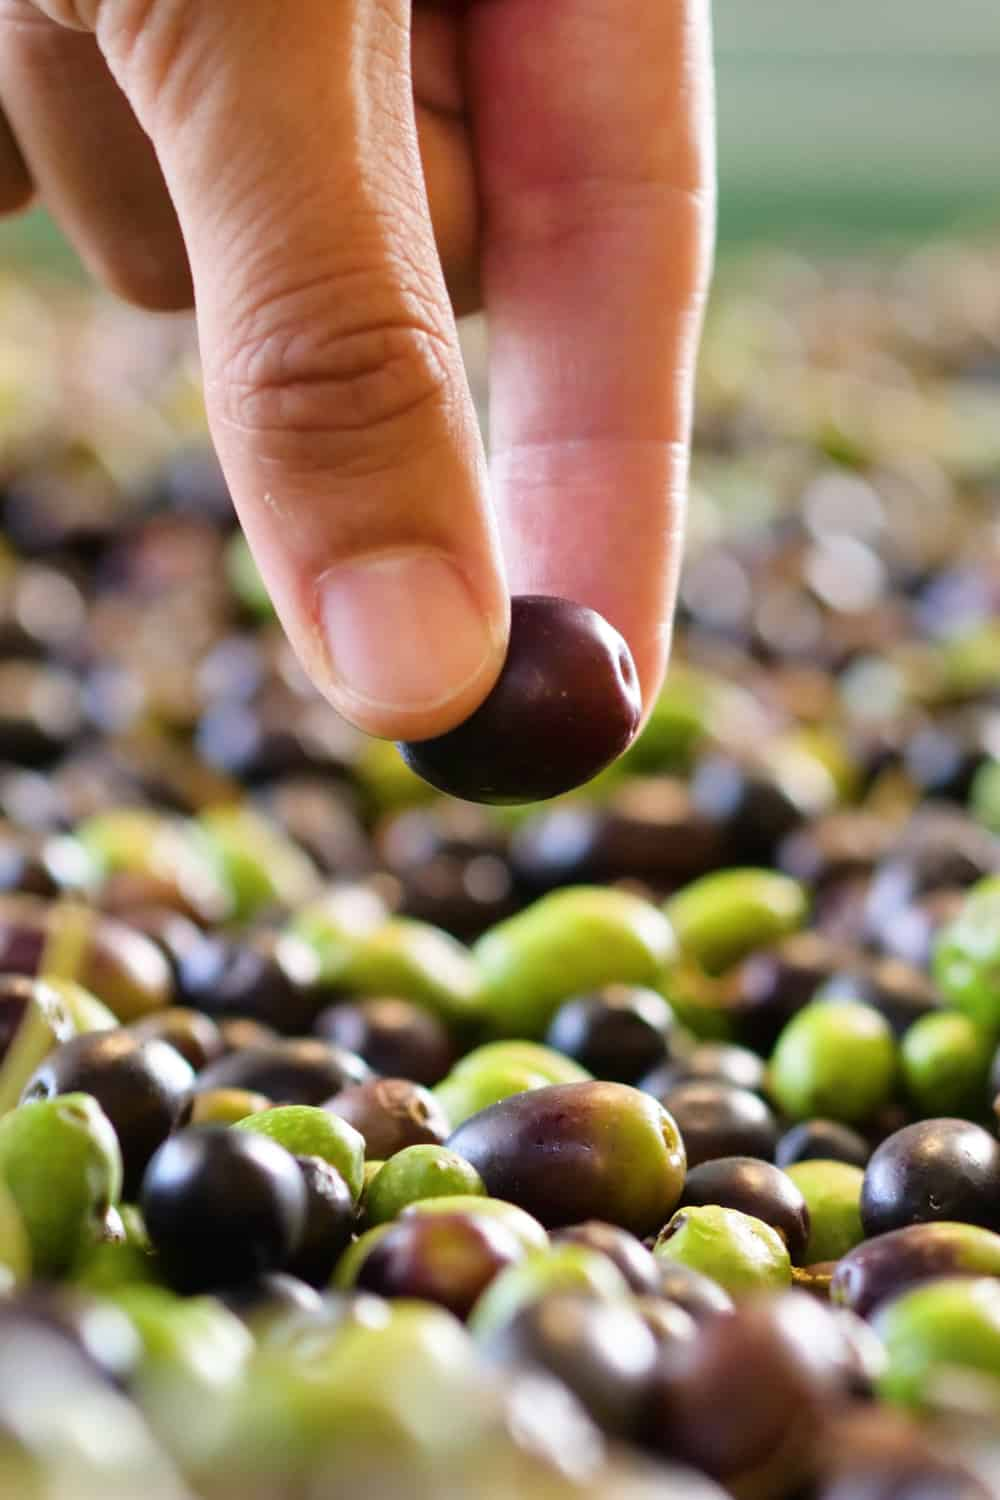 Tips to tell if olives have gone bad